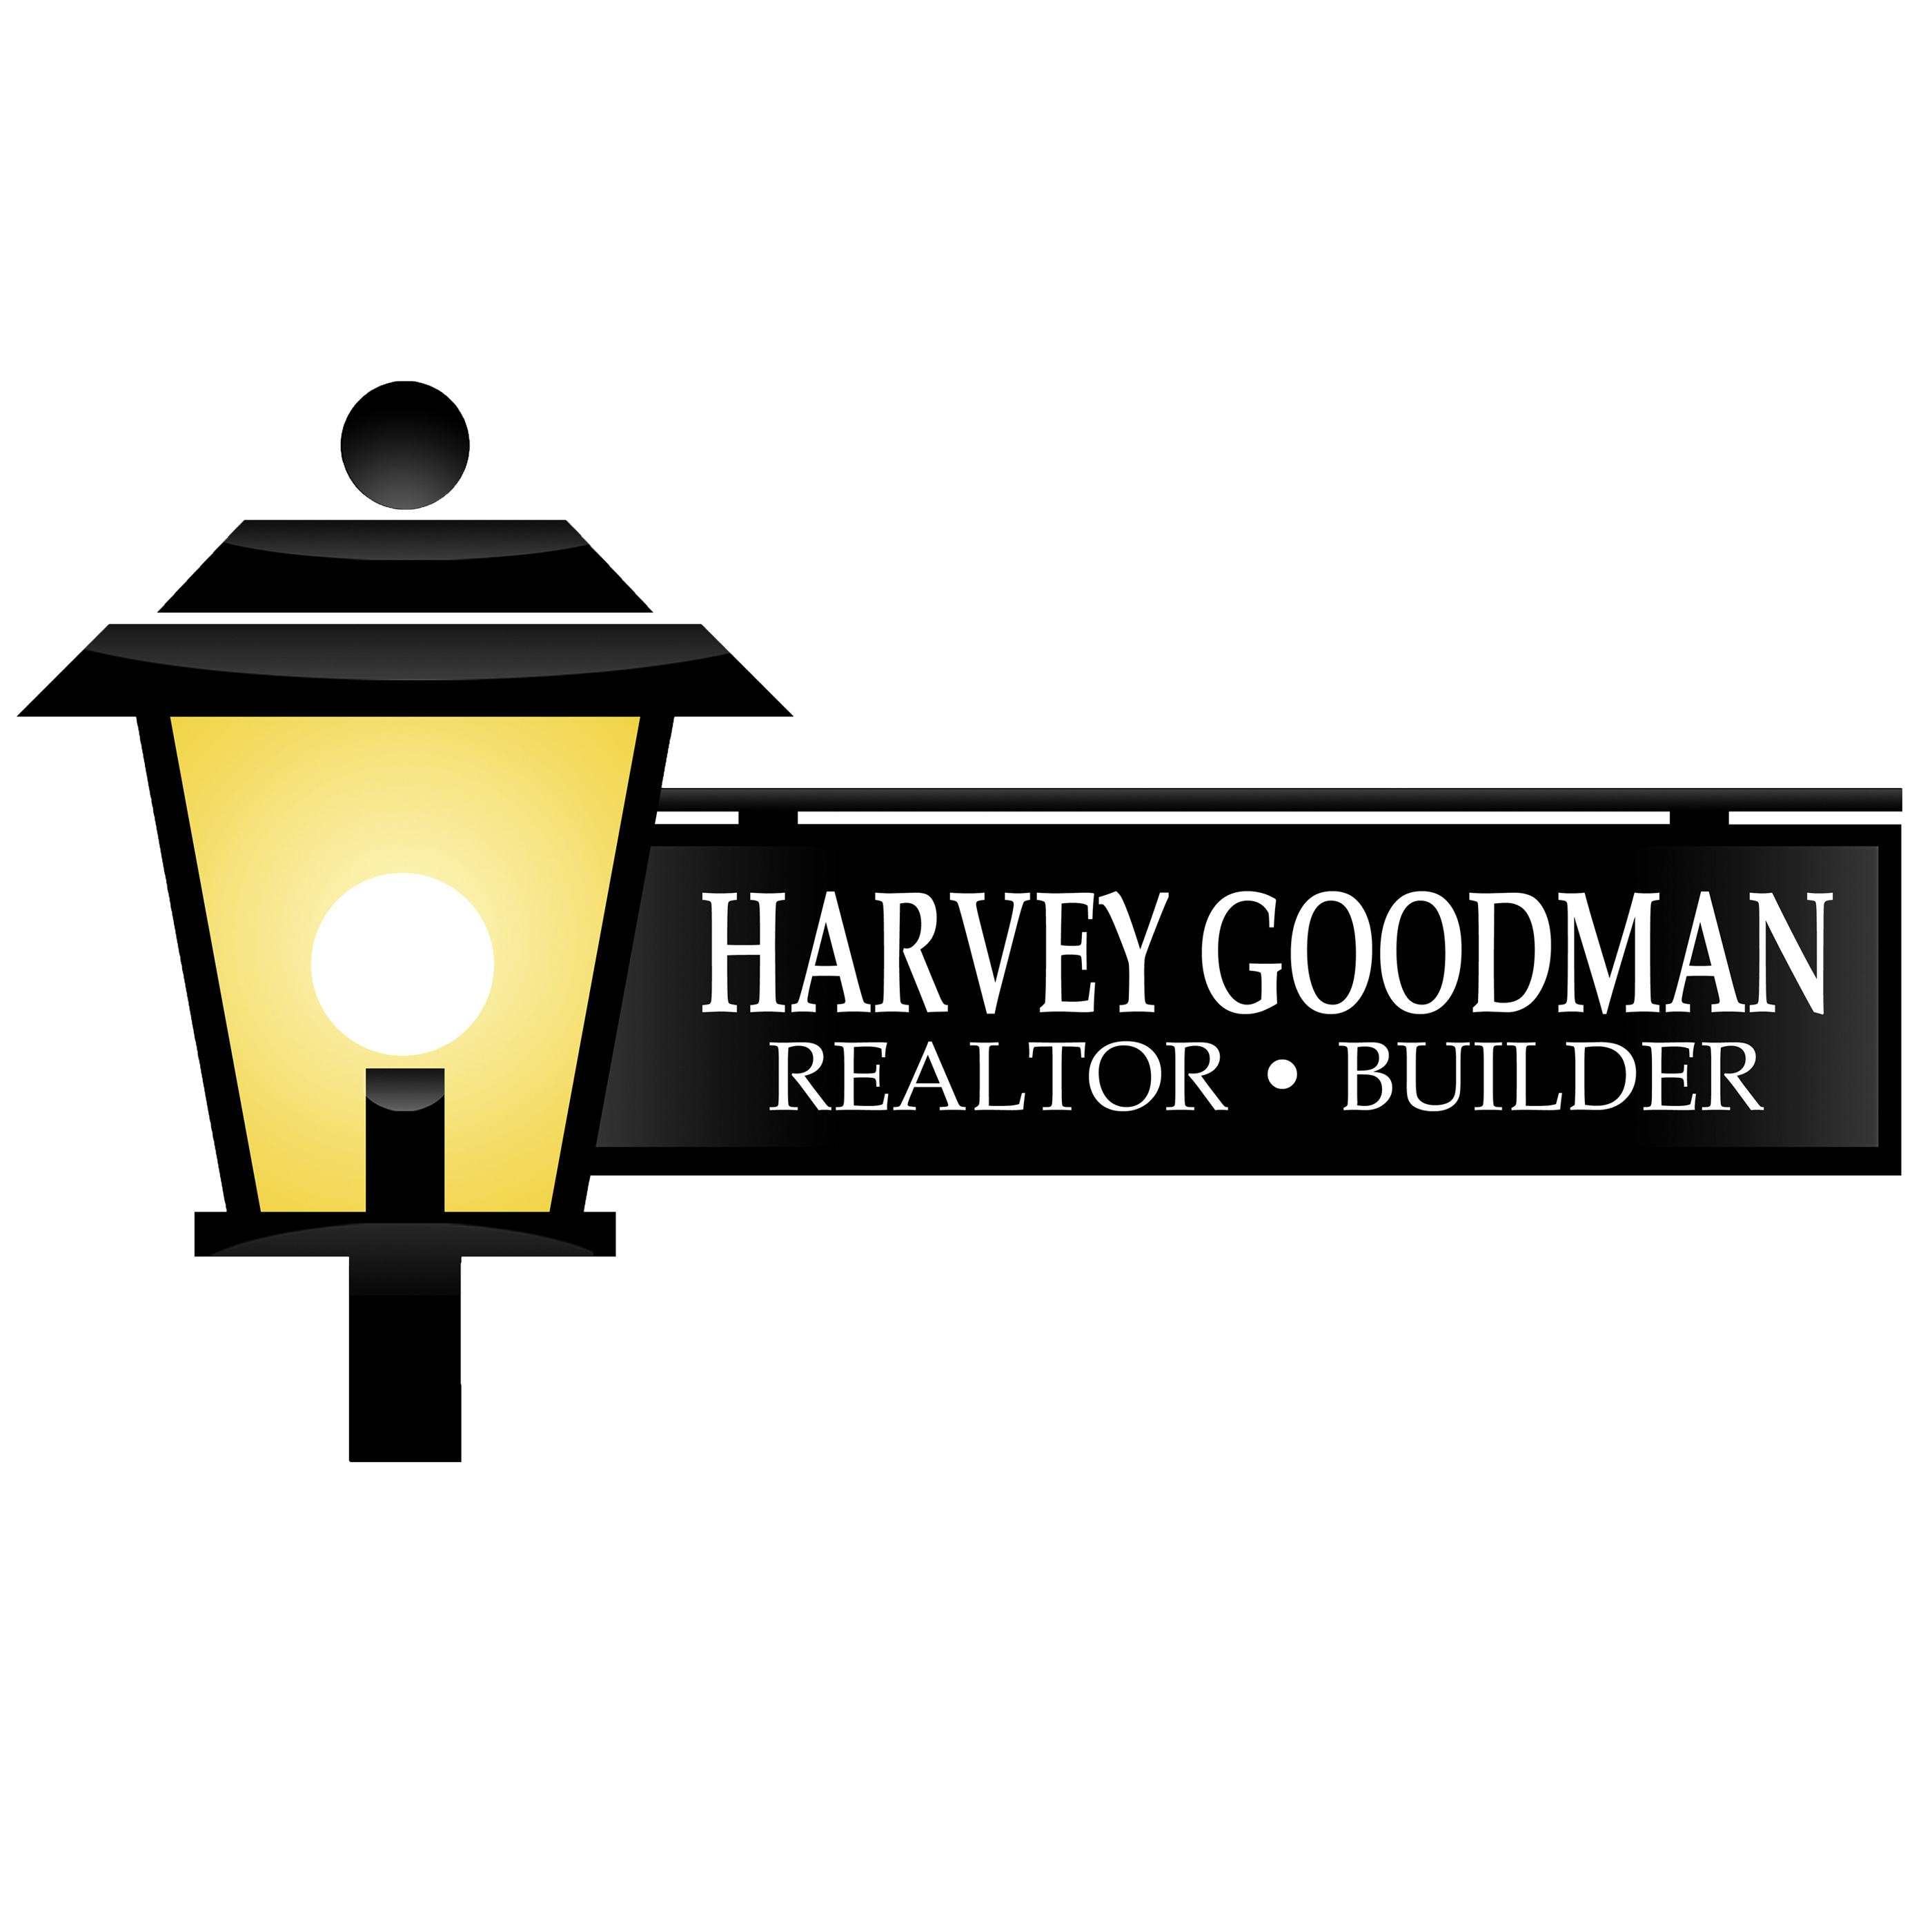 Harvey Goodman Realtor